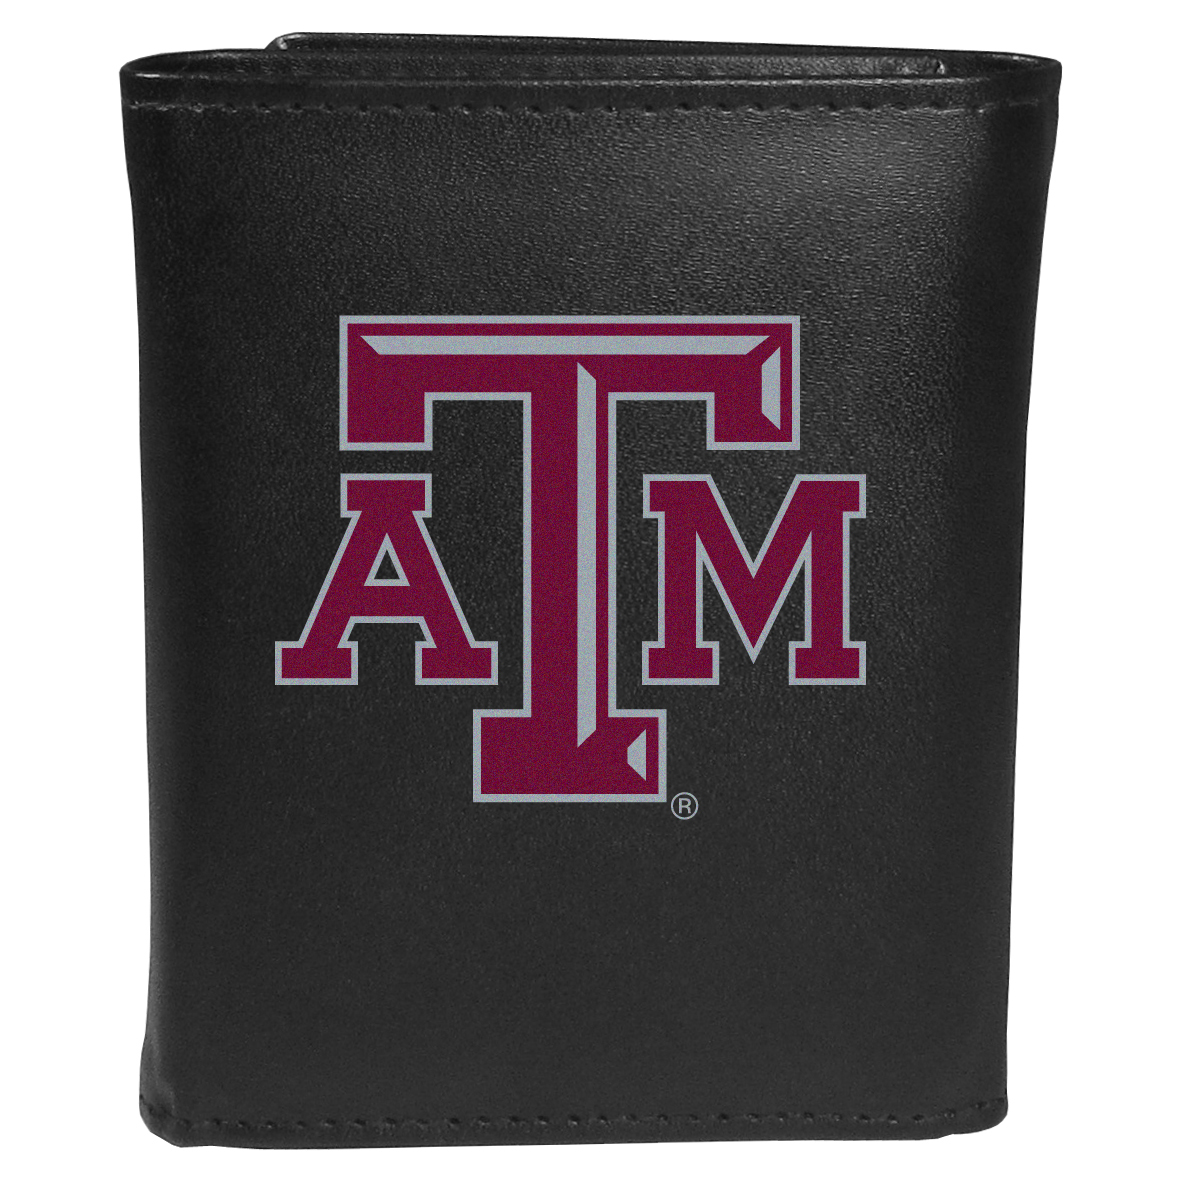 Texas A and M Aggies Tri-fold Wallet Large Logo - Sports fans do not have to sacrifice style with this classic tri-fold wallet that sports theTexas A & M Aggies?extra large logo. This men's fashion accessory has a leather grain look and expert craftmanship for a quality wallet at a great price. The wallet features inner credit card slots, windowed ID slot and a large billfold pocket. The front of the wallet features an extra large printed team logo.